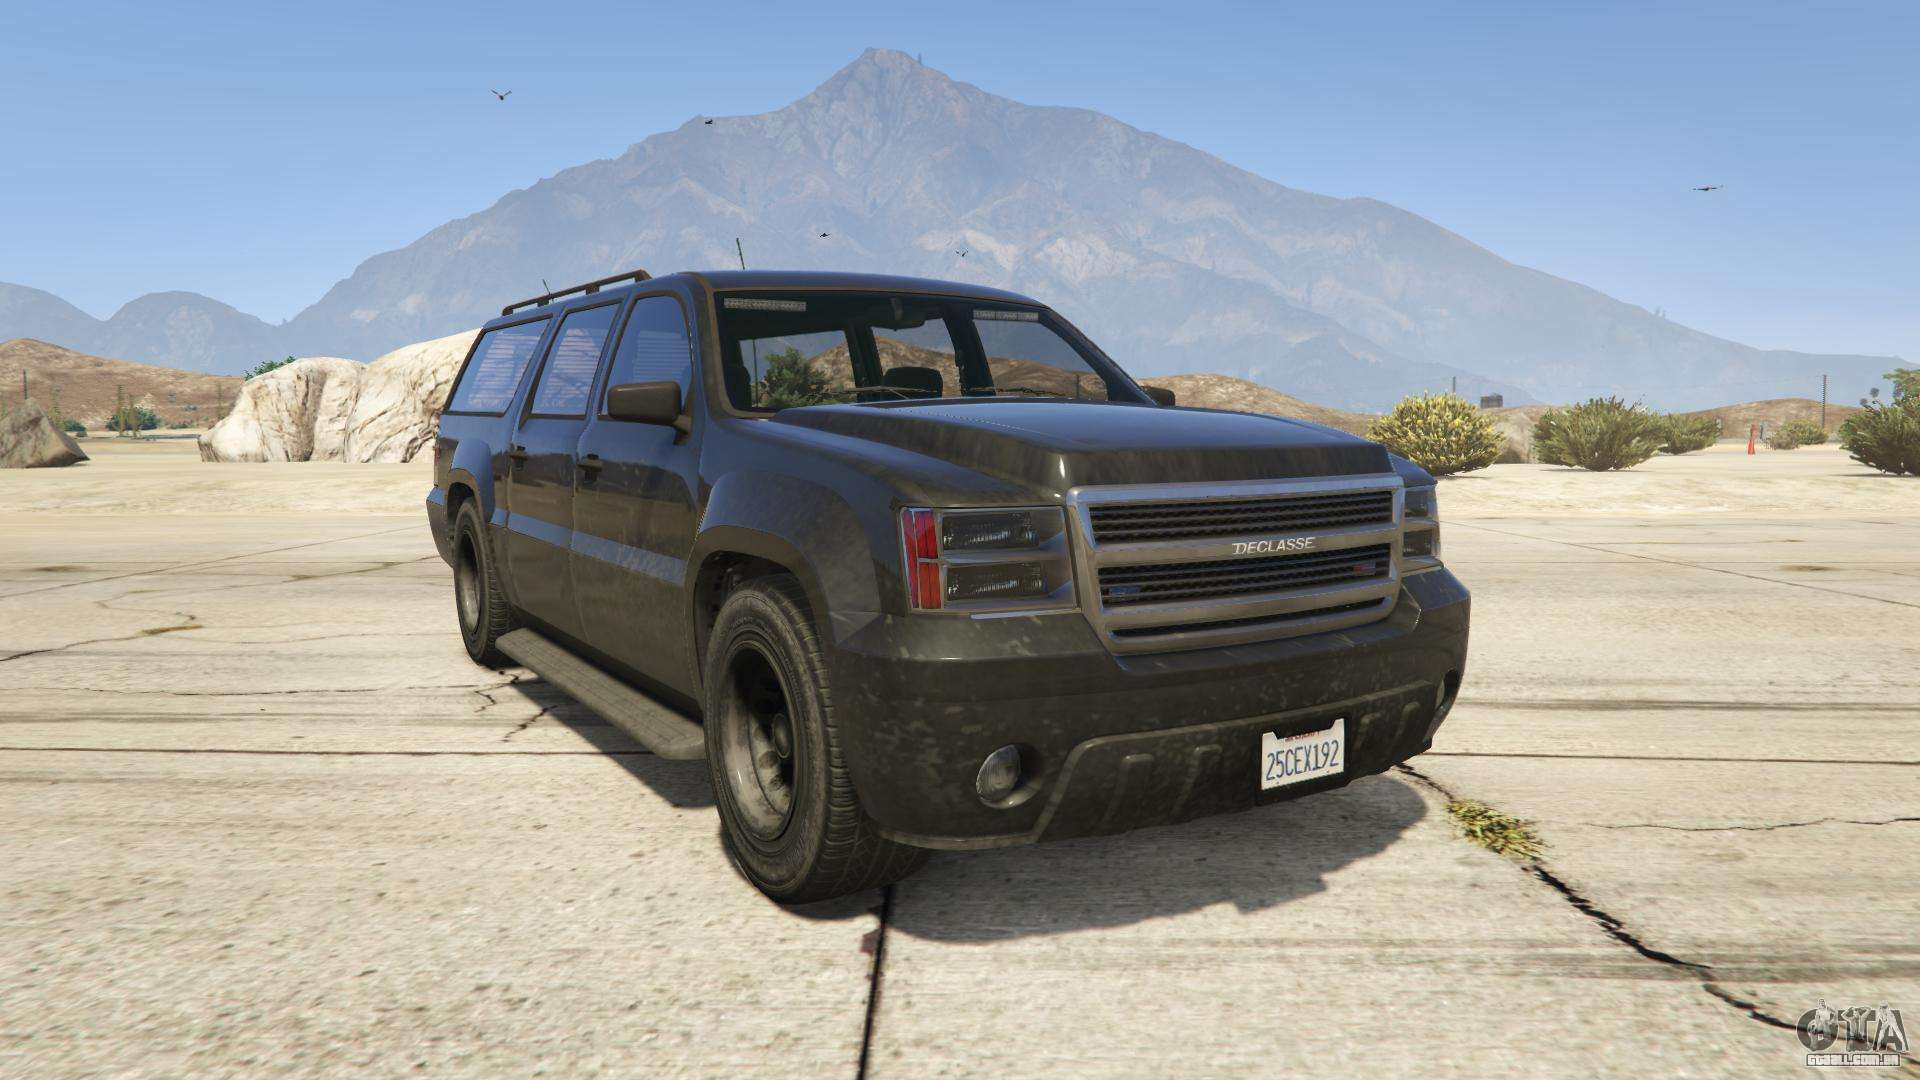 GTA 5 Declasse FIB - vista frontal